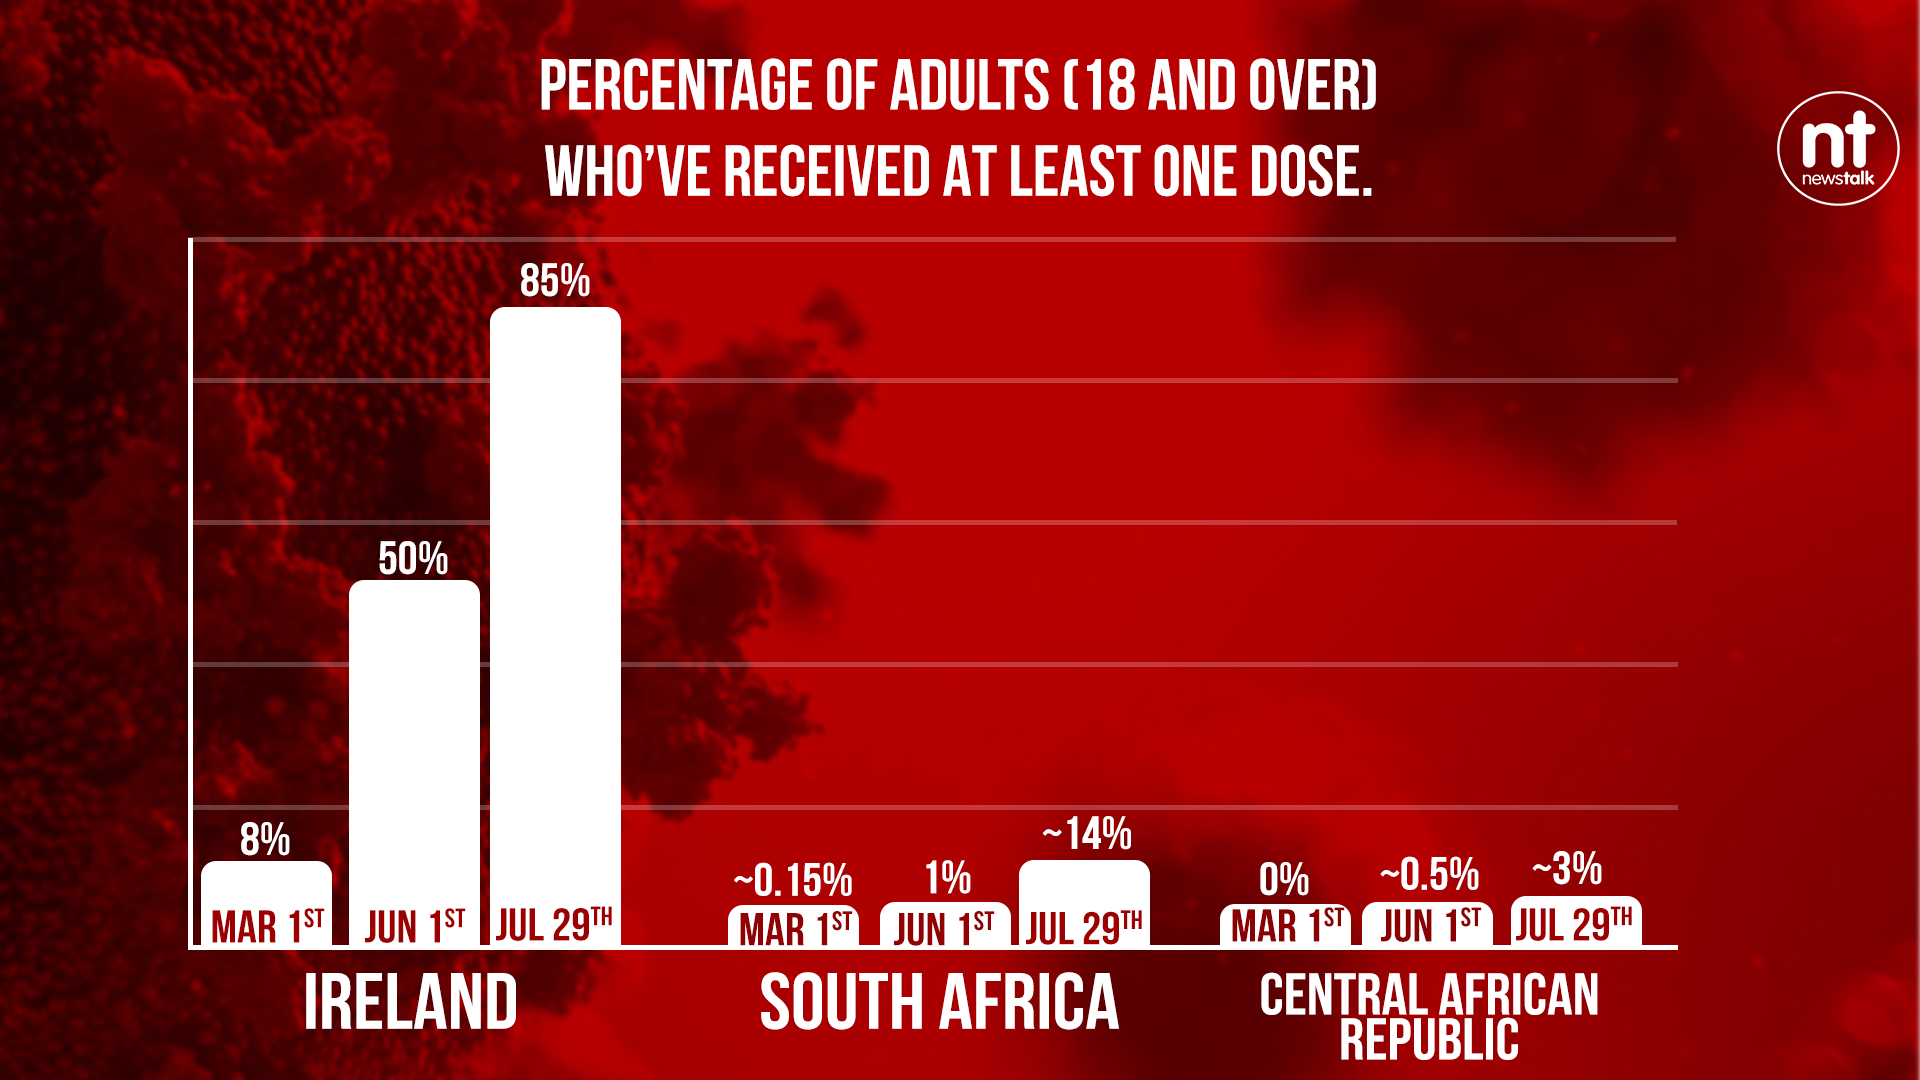 Chart comparing Ireland's vaccine rollout to South Africa and the Central African Republic